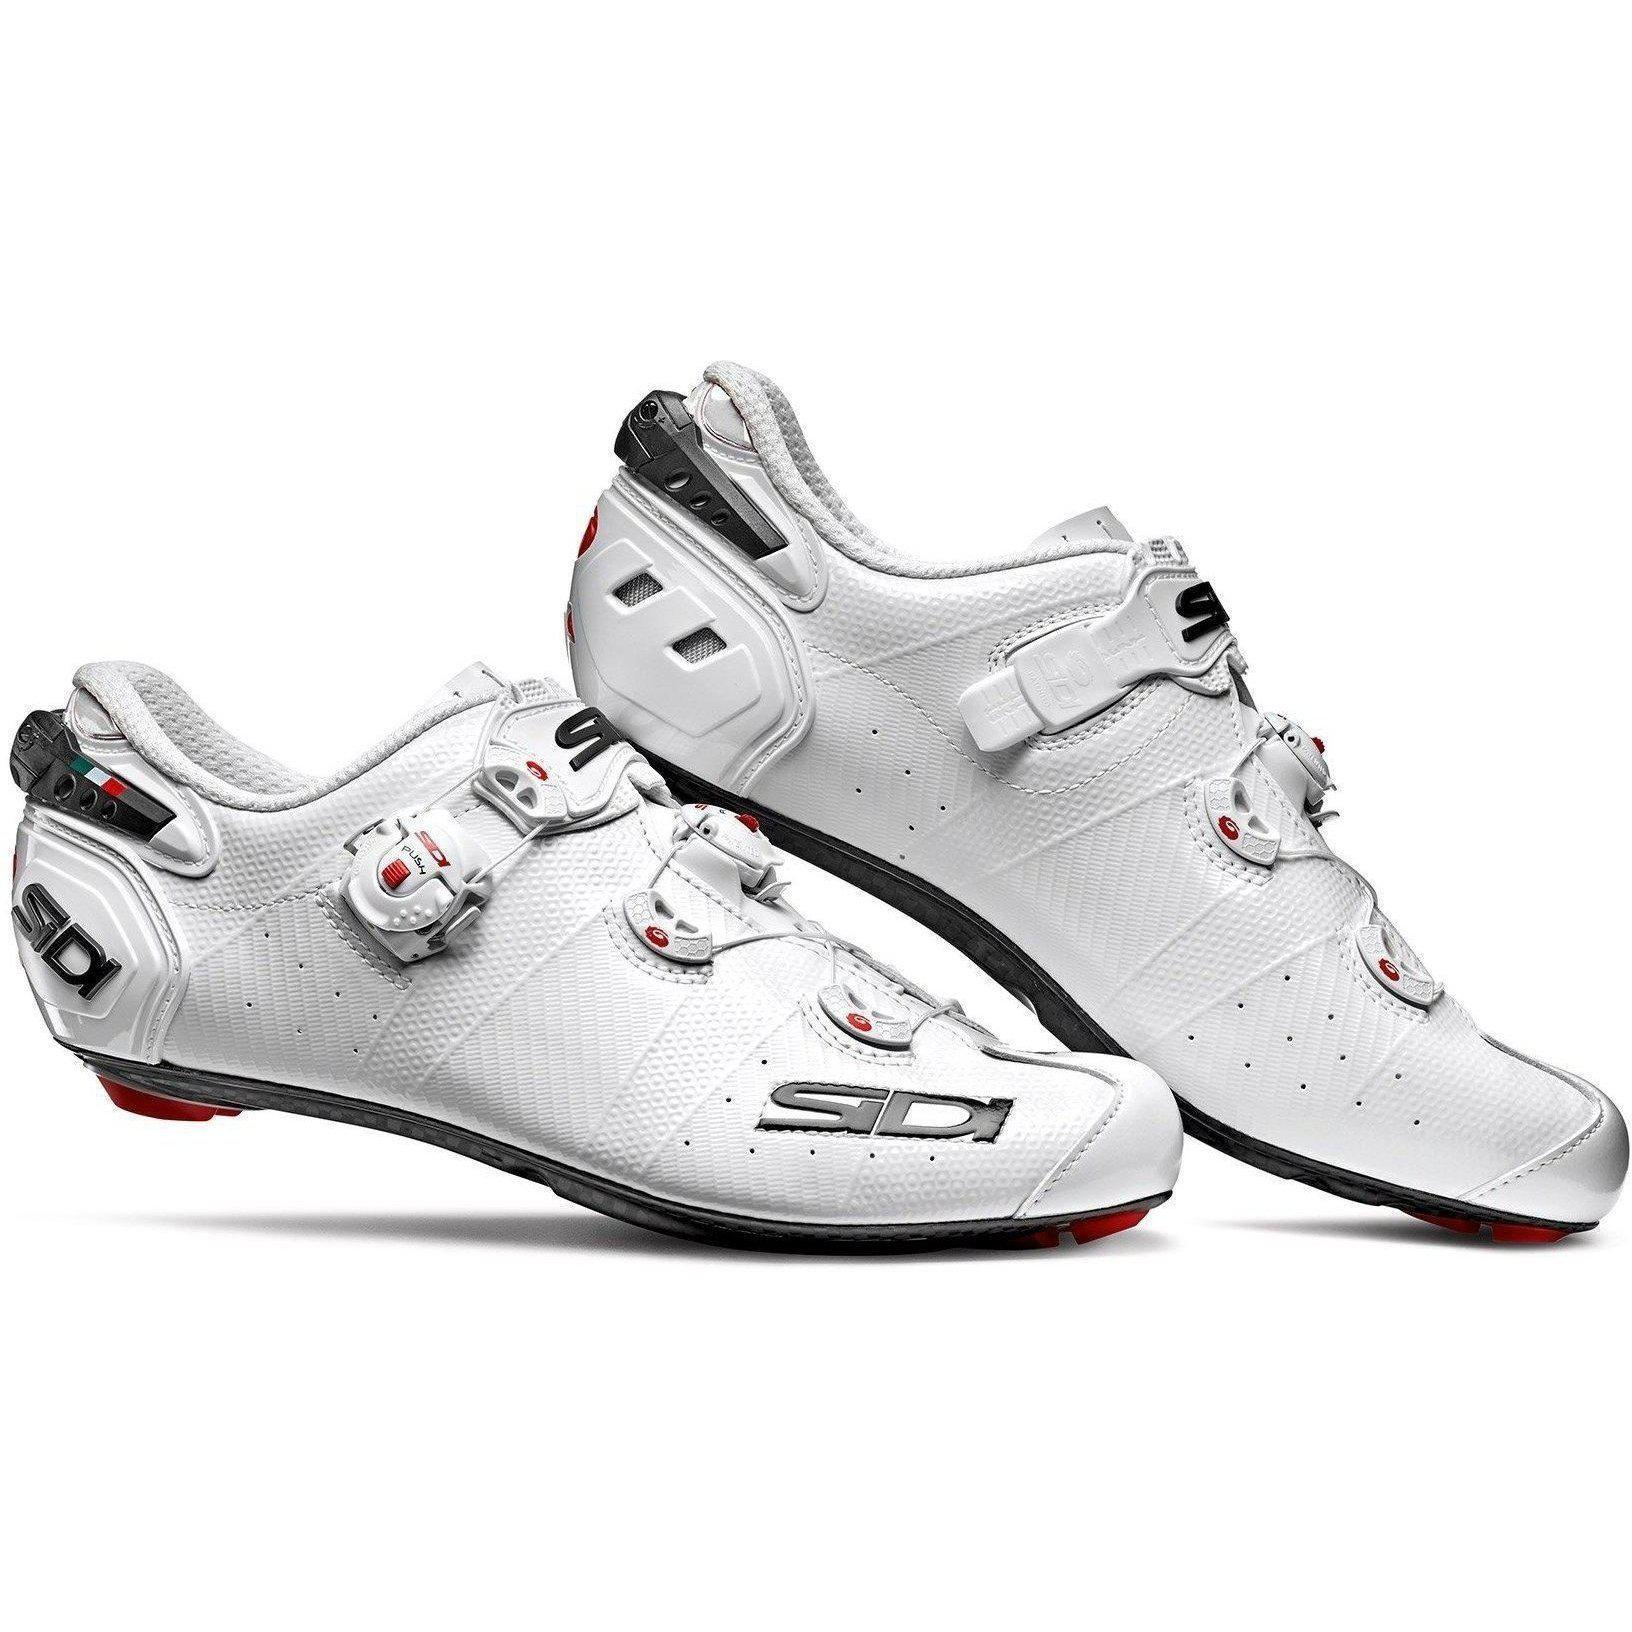 Sidi Wire 2 Carbon Women's Road Shoes